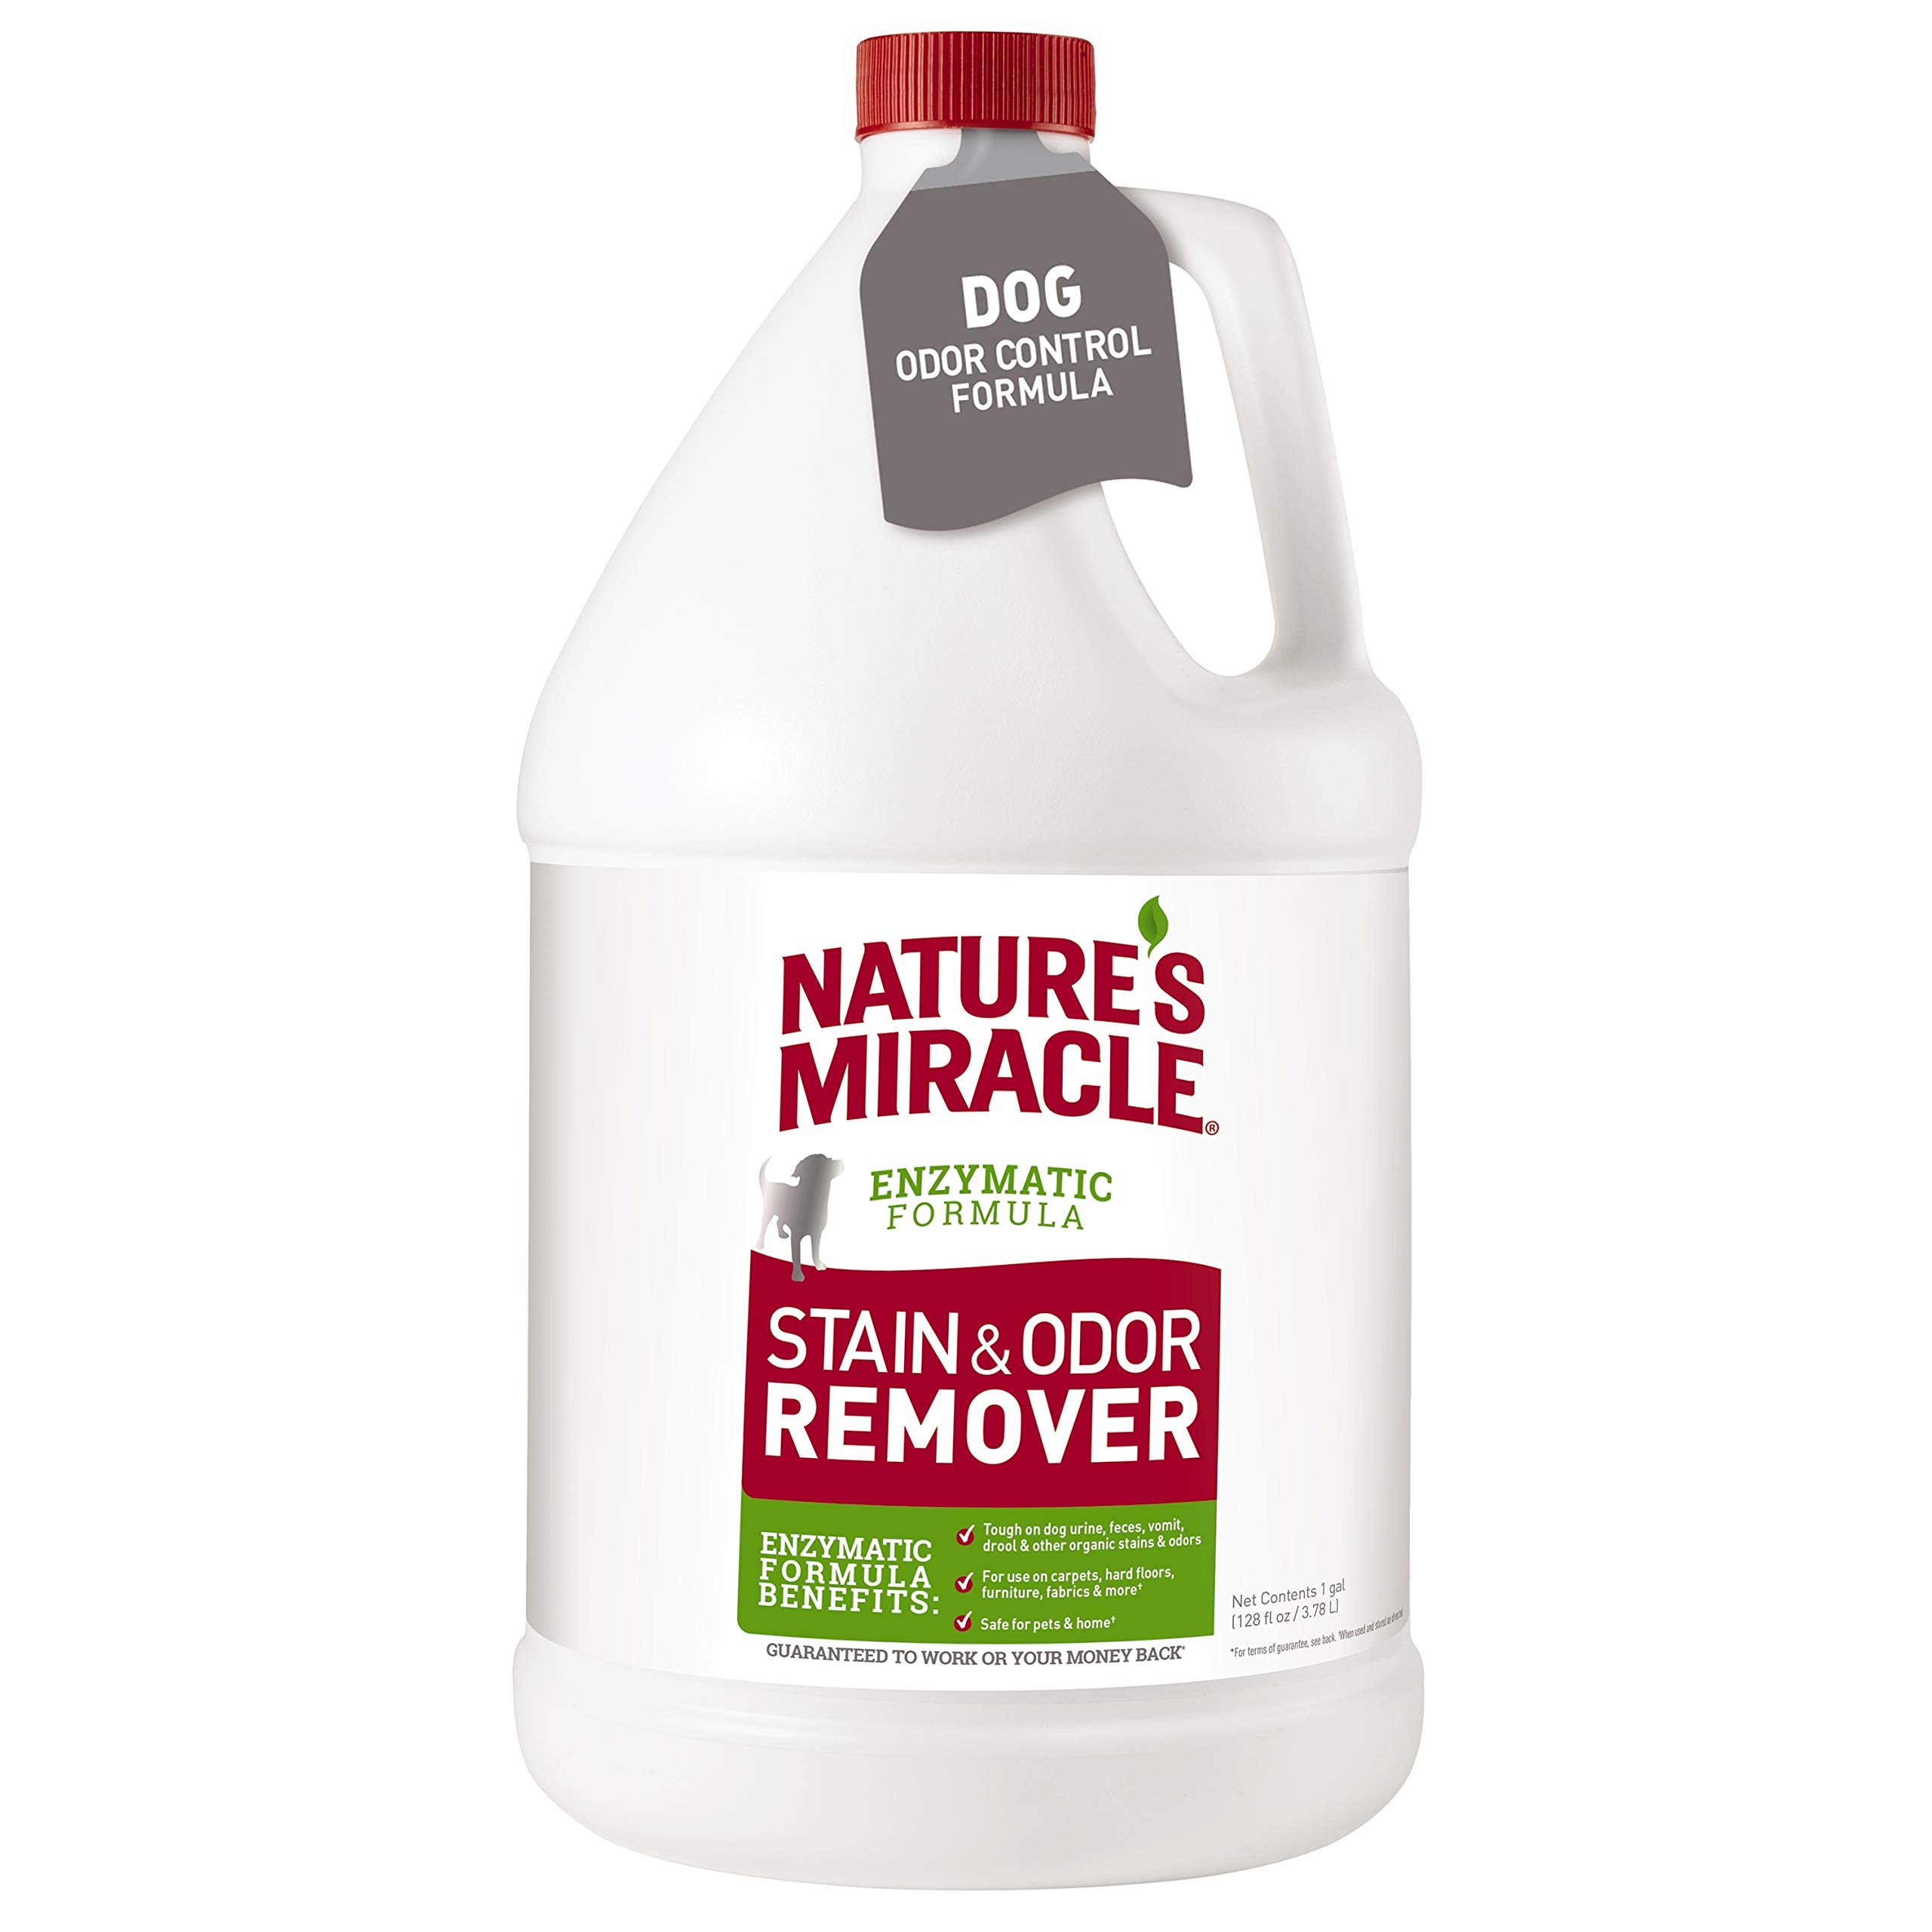 Nature's Miracle Stain and Odor Remover, Nature's Enzymatic Formula with Improved Odor Control, 1 Gallon by Nature's Miracle (Image #1)